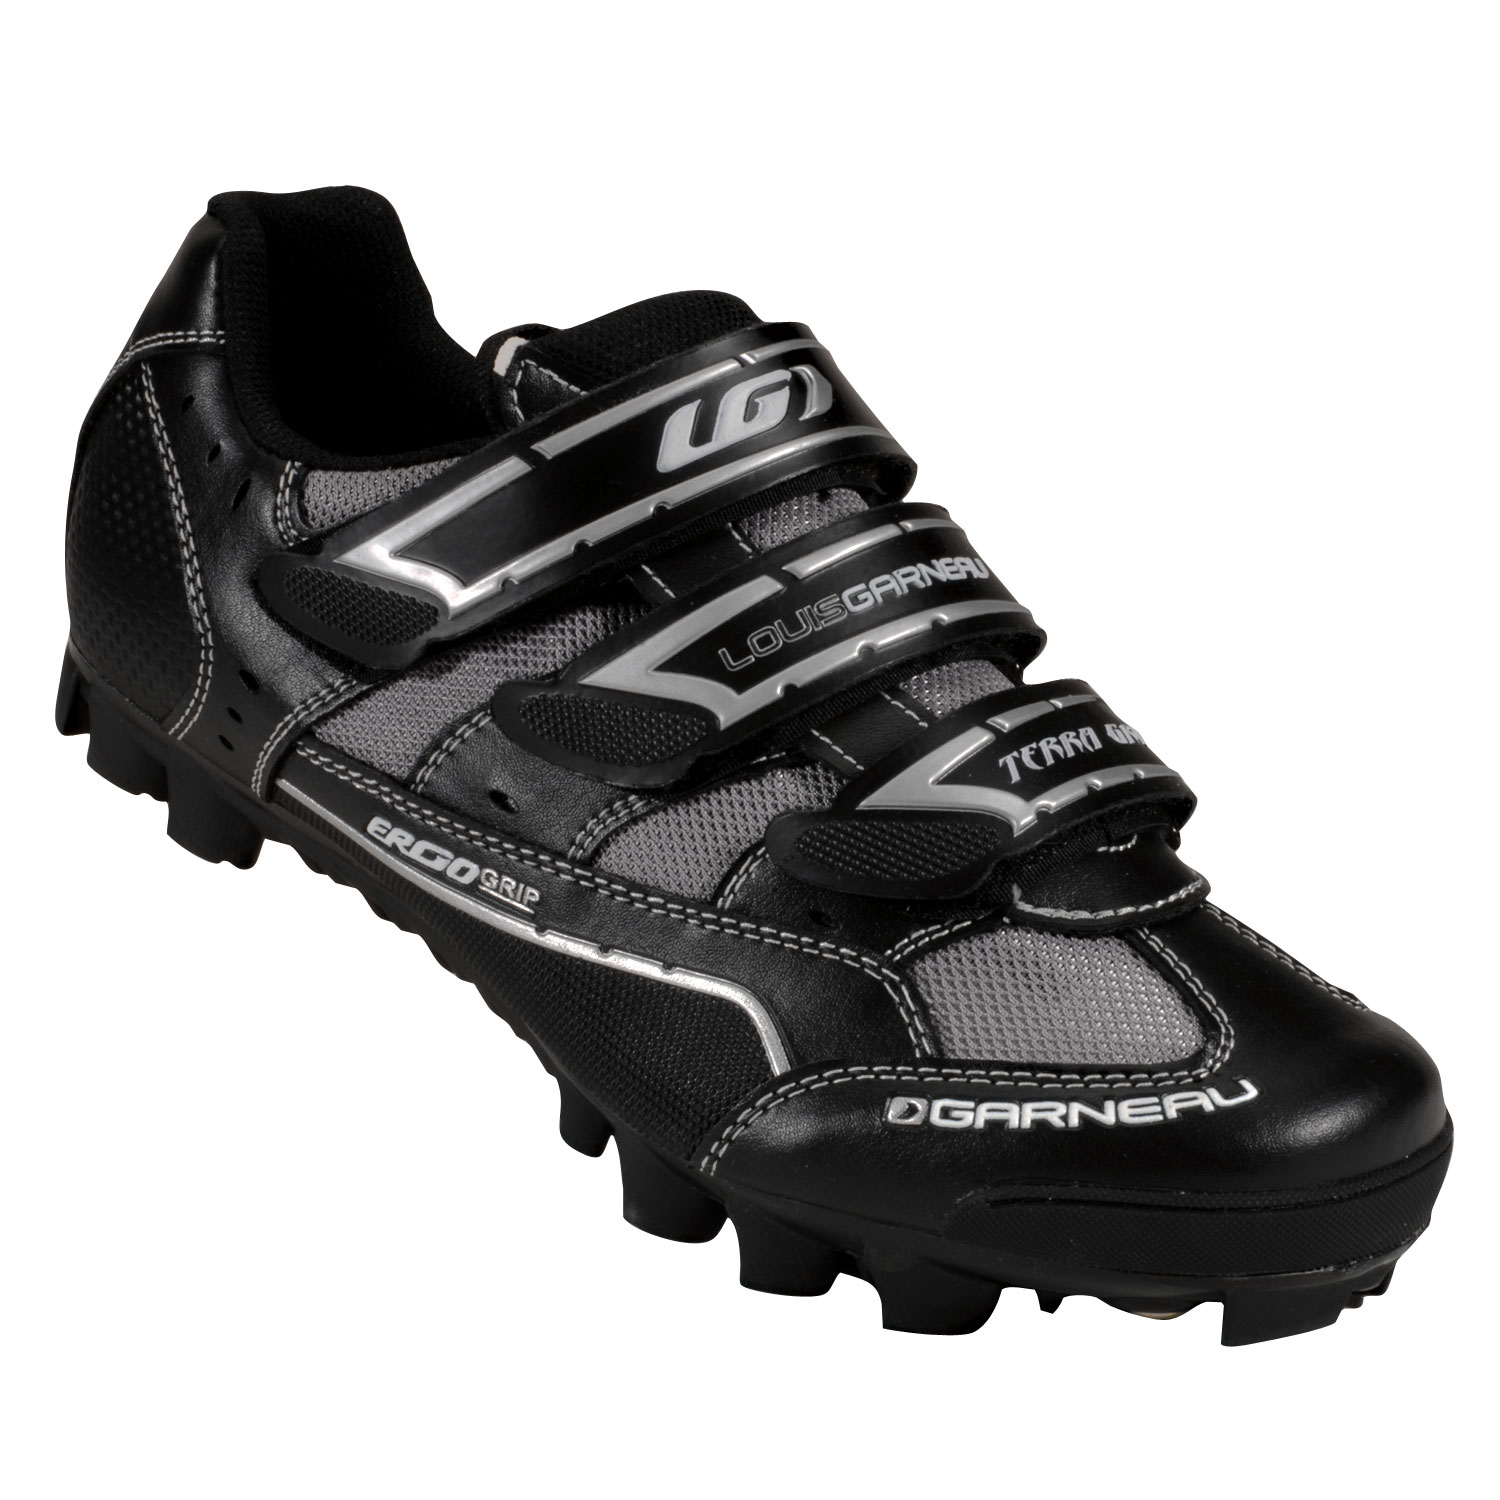 Considering clipless, need advice on shoes...-terra-grip-shoe.jpg